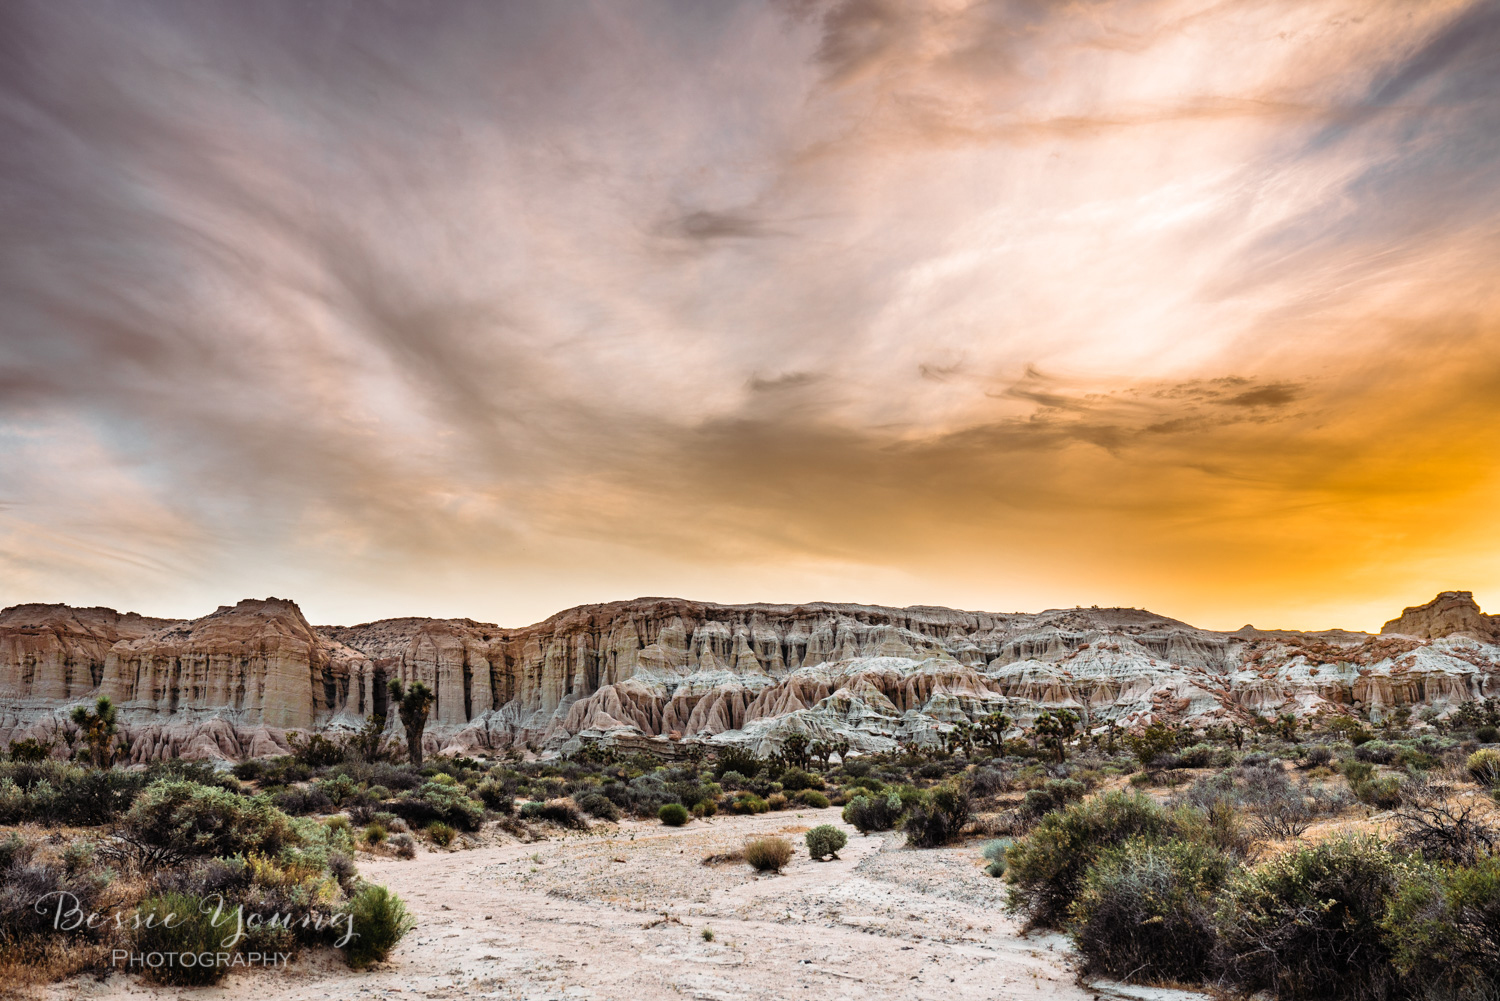 Red Rock Canyon Mojave Desert- Bessie Young Photography 2018-18.jpg